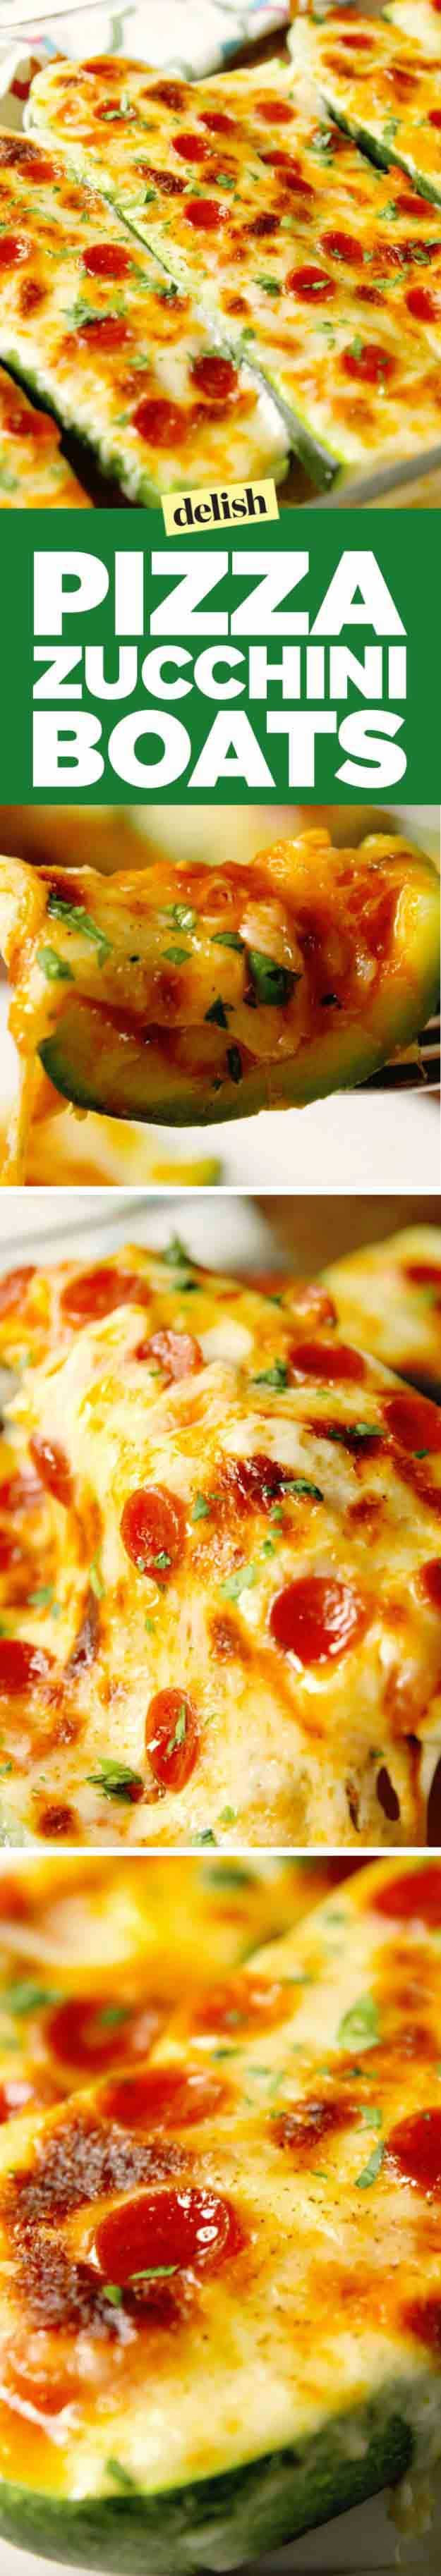 Quick and Easy Healthy Dinner Recipes - Pizza Zucchini Boats - Awesome Recipes For Weight Loss - Great Receipes For One, For Two or For Family Gatherings - Quick Recipes for When You're On A Budget - Chicken and Zucchini Dishes Under 500 Calories - Quick Low Carb Dinners With Beef or Shrimp or Even Vegetarian - Amazing Dishes For Picky Eaters - http://thegoddess.com/easy-healthy-dinner-receipes